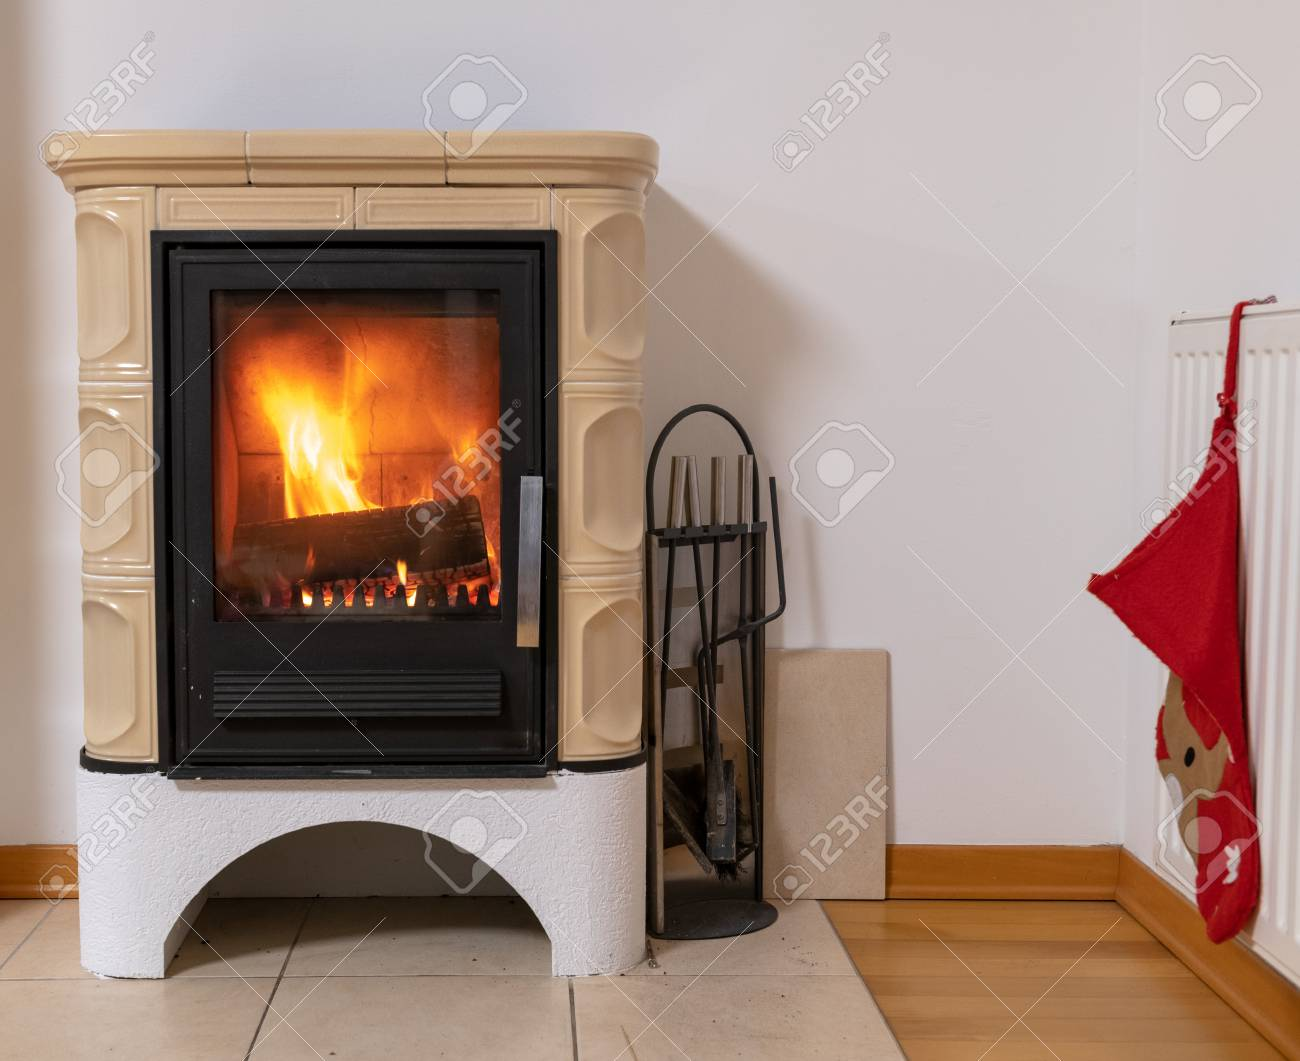 Tiled stove with fire burning inside, cosy and warm interior scene, heating in winter, Christmas decoration on the wall - 120368011